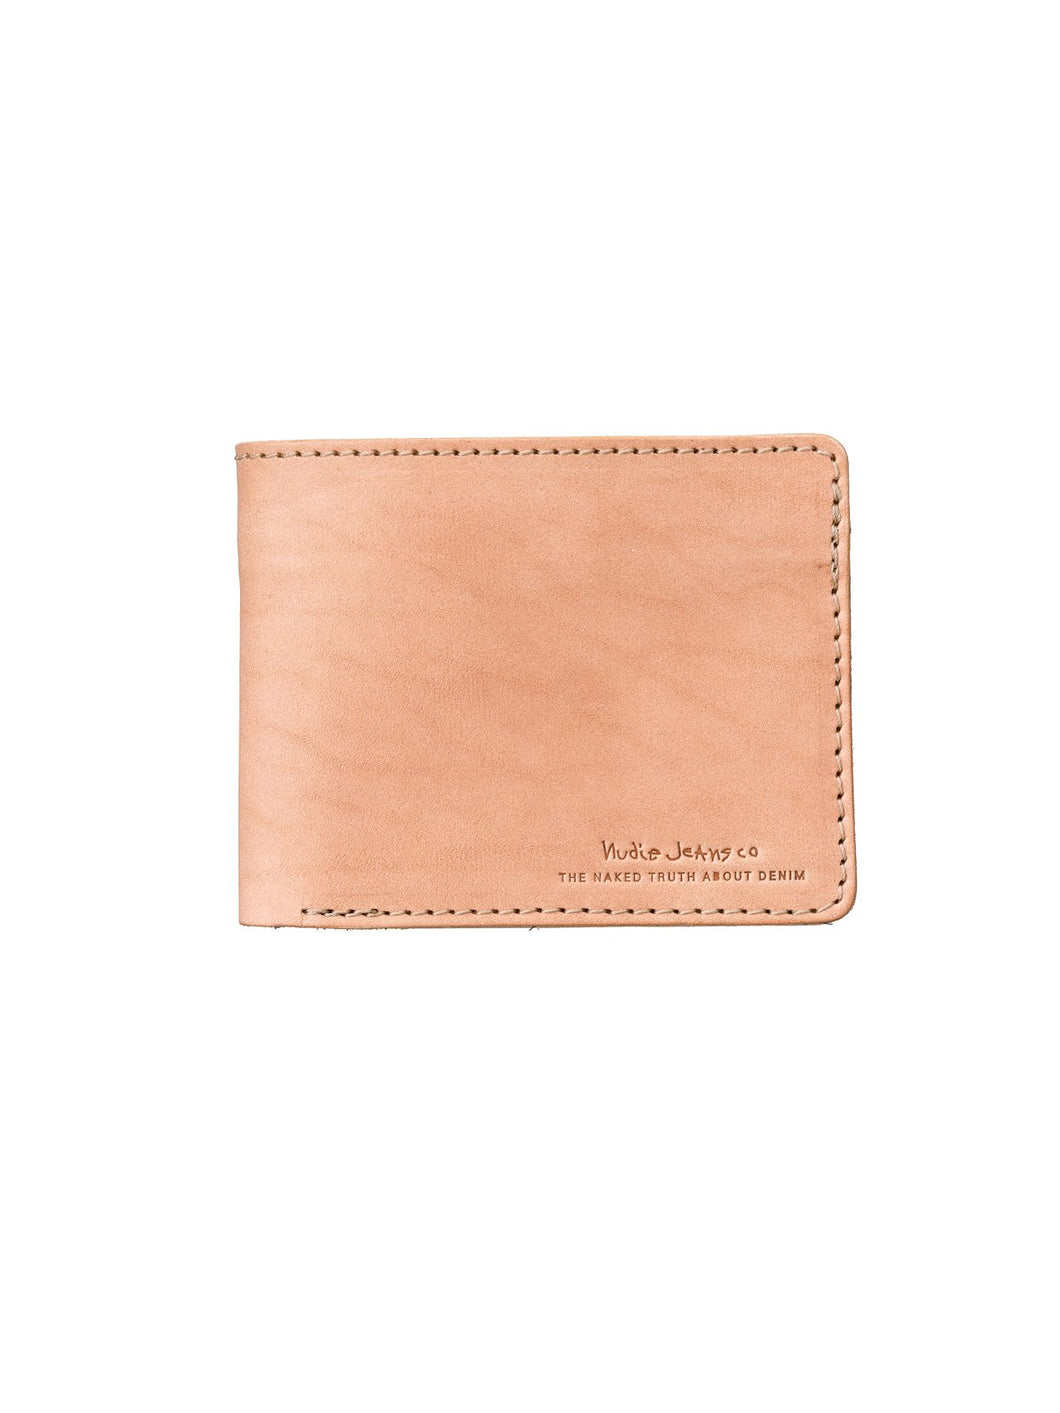 NUDIE JEANS CALLESSON LEATHER WALLET -Natural